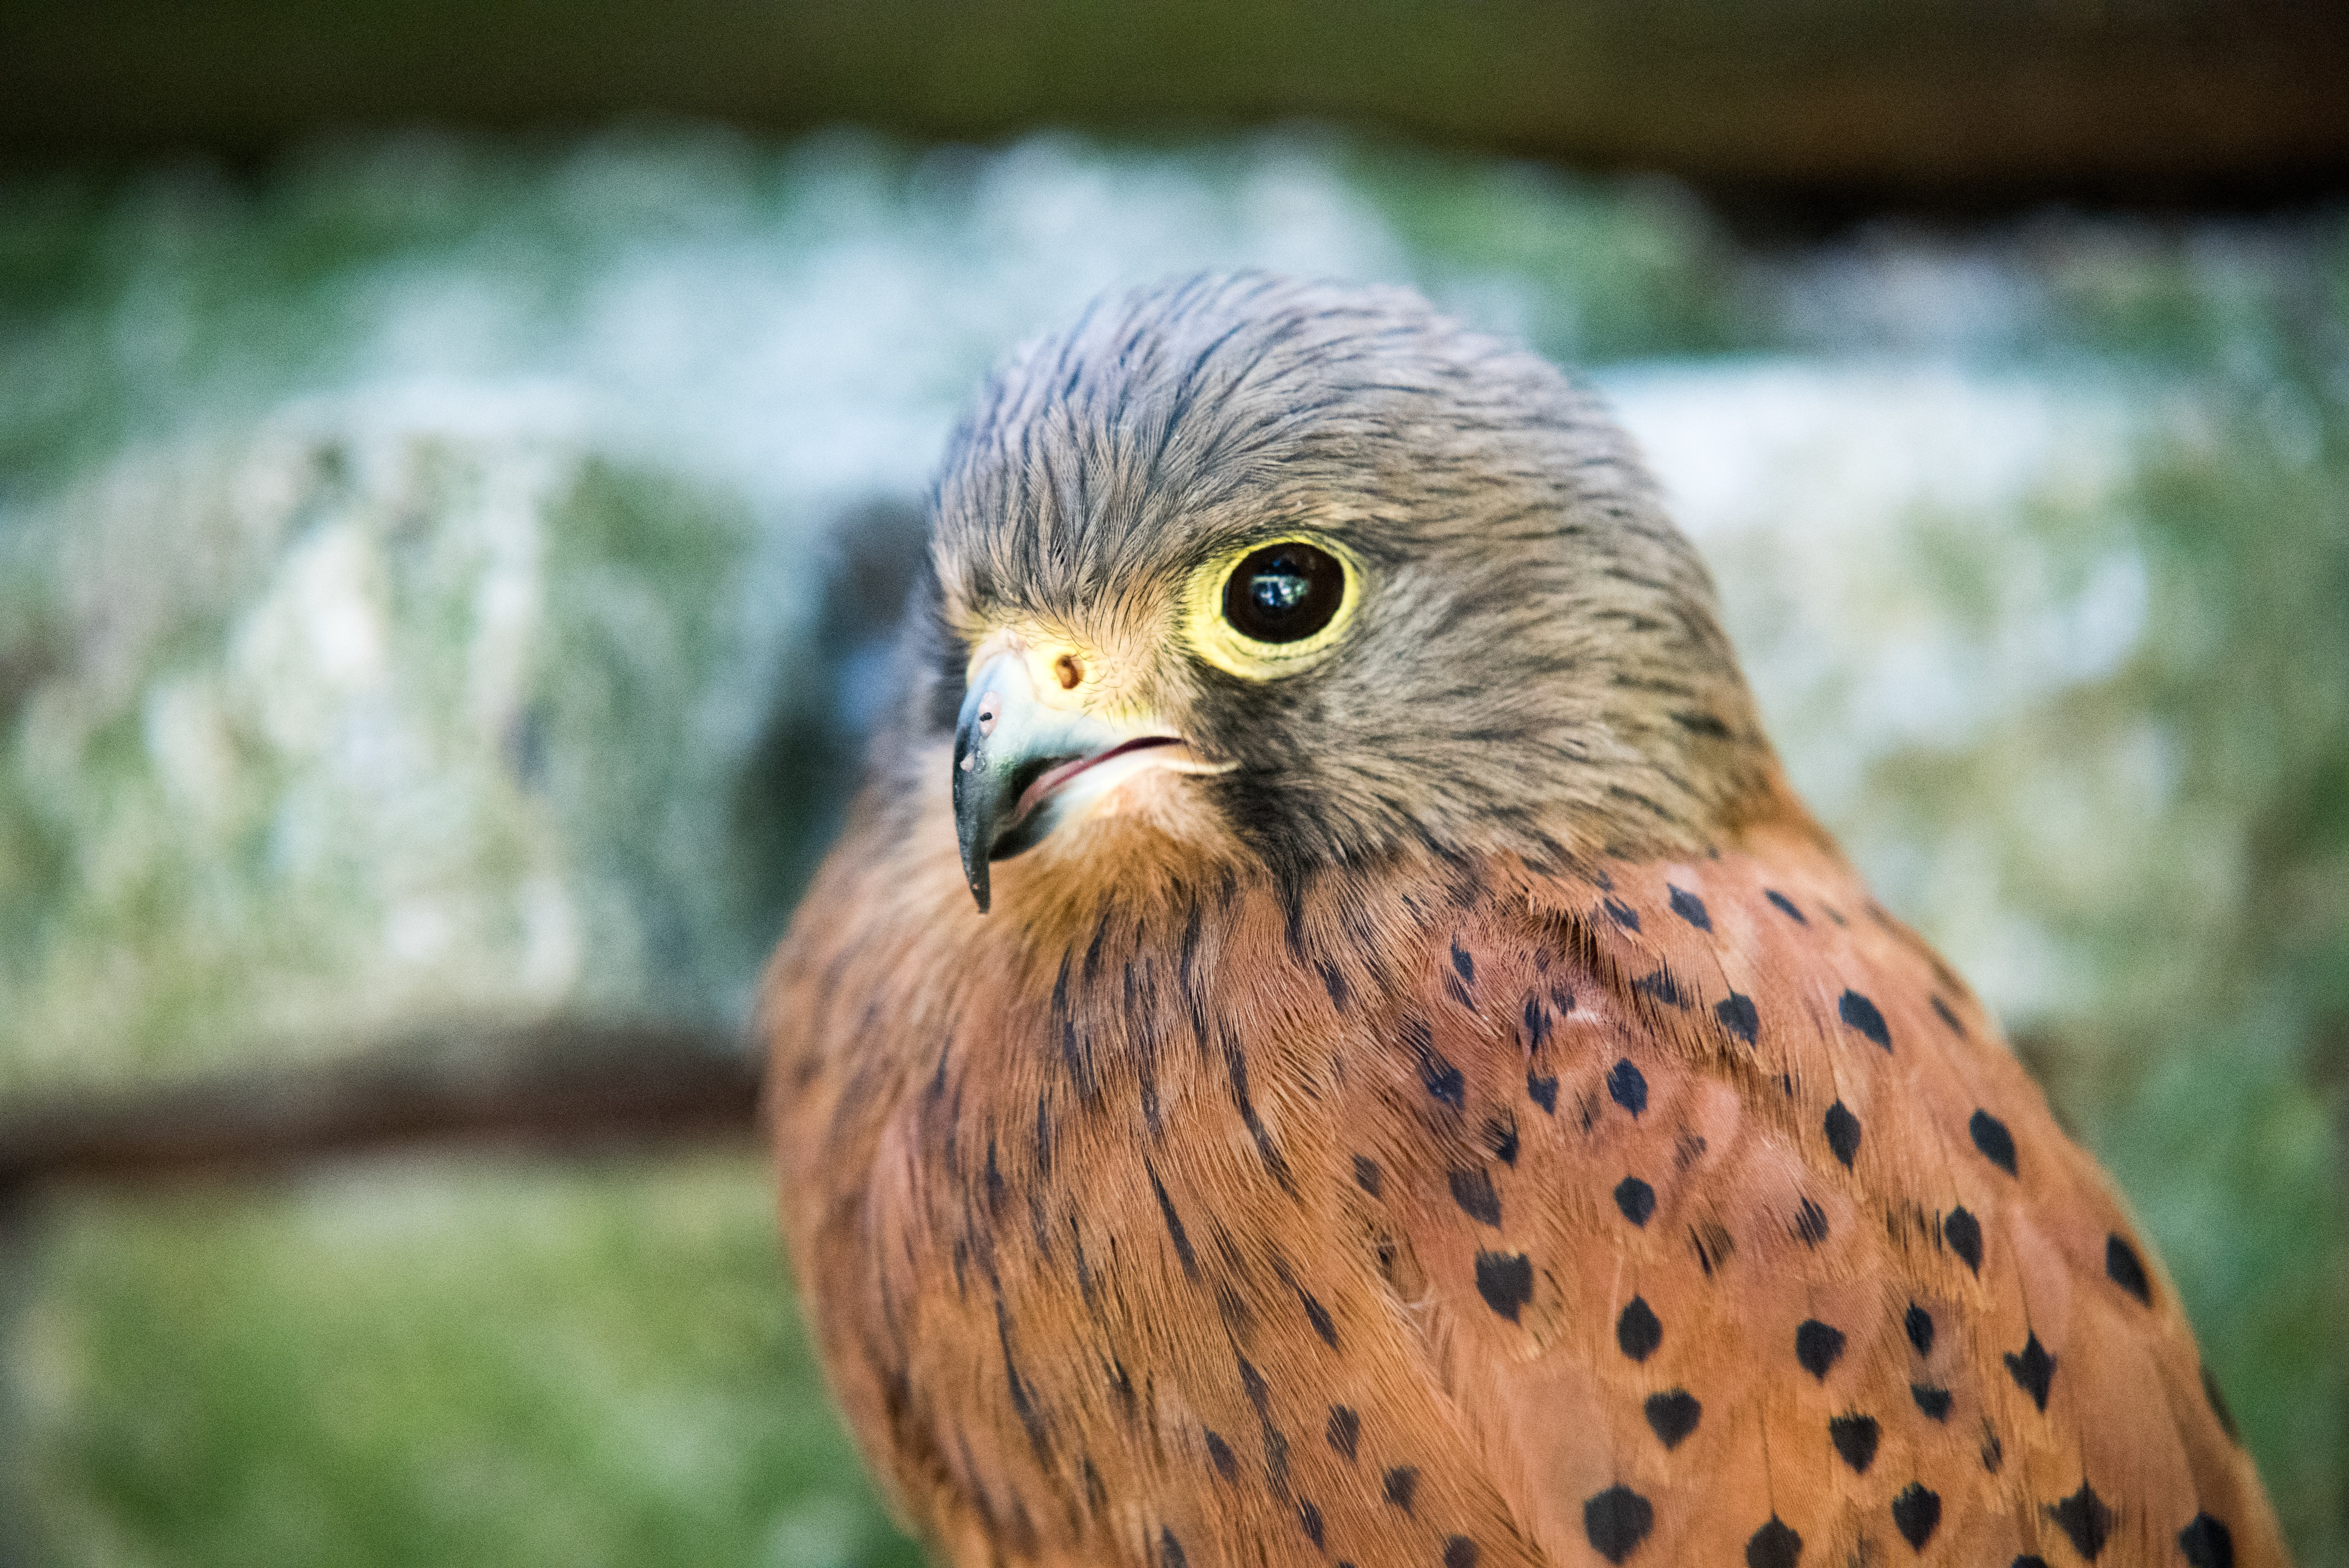 A close-up of a falcon looking at the camera